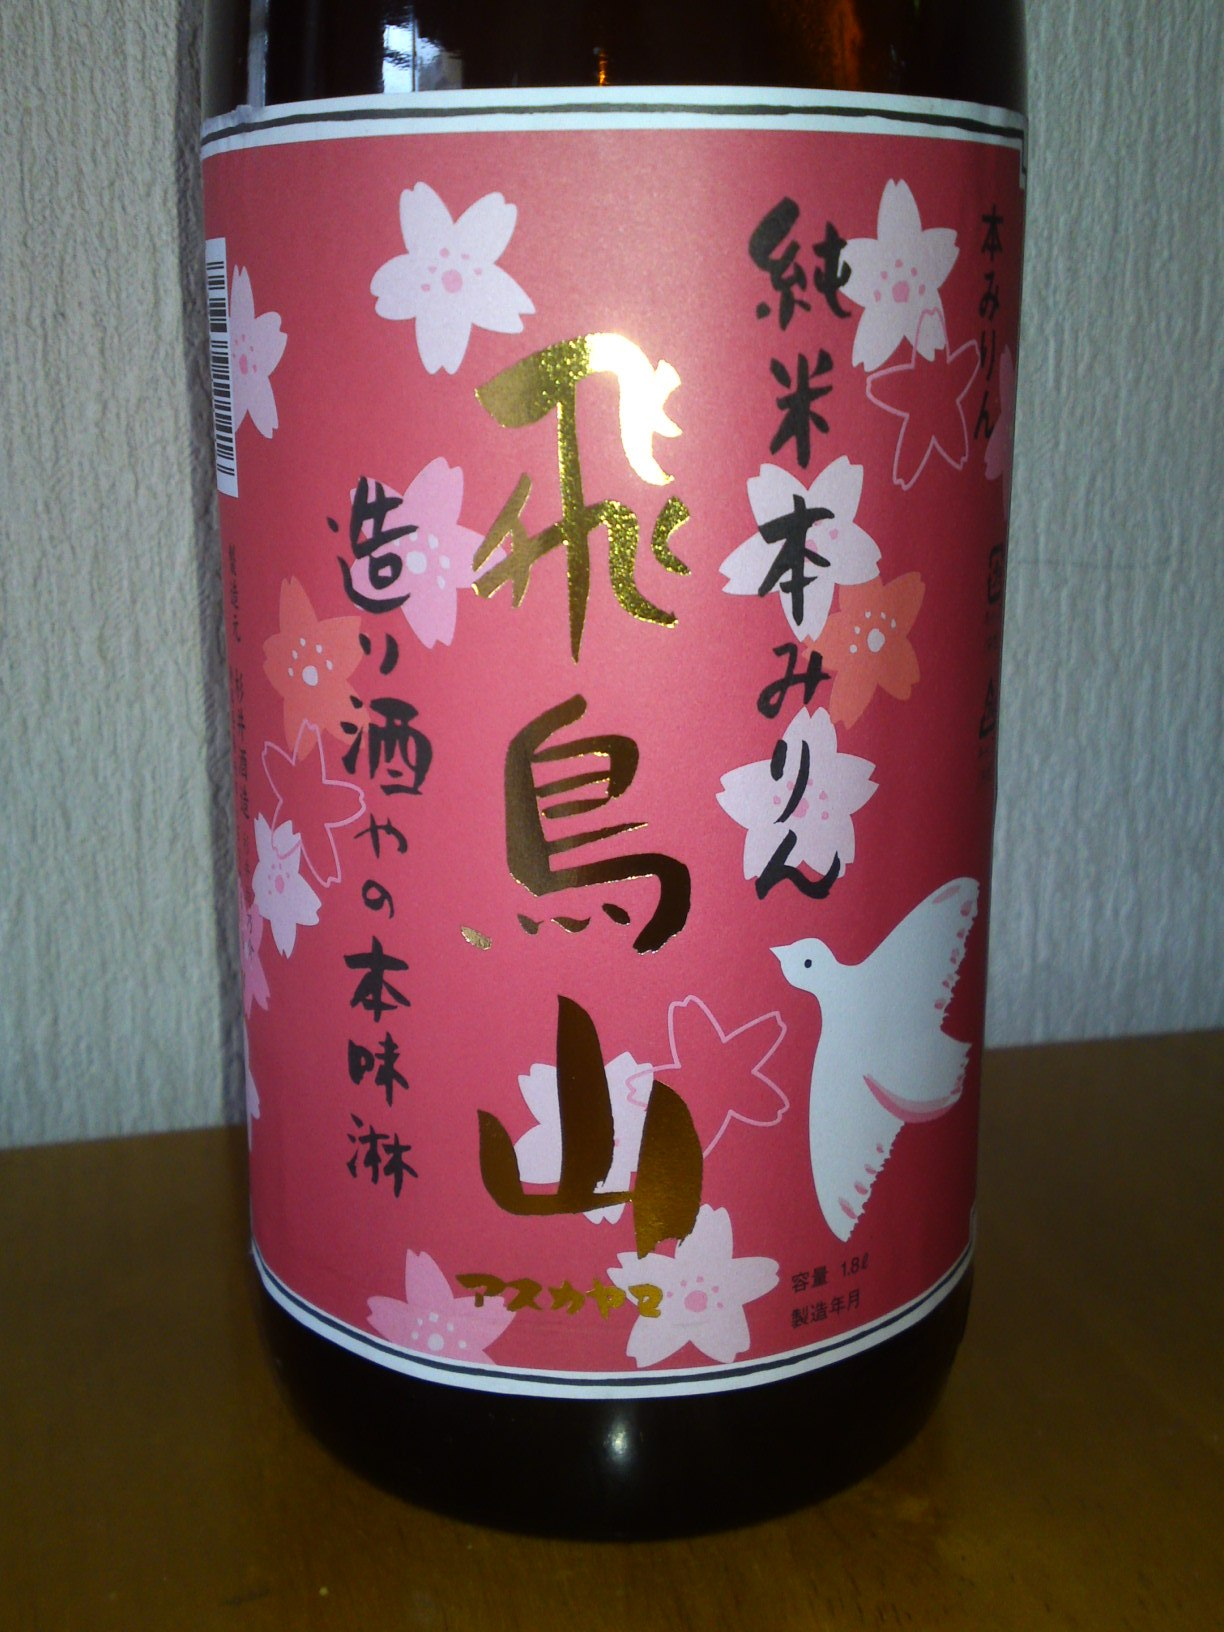 This Is The Very First Time I Felt Compelled To Write A Tasting Report On Mirin Cooking Sweet Sake But Atsukayama Brewed By Sugii Brewery In Fujieda